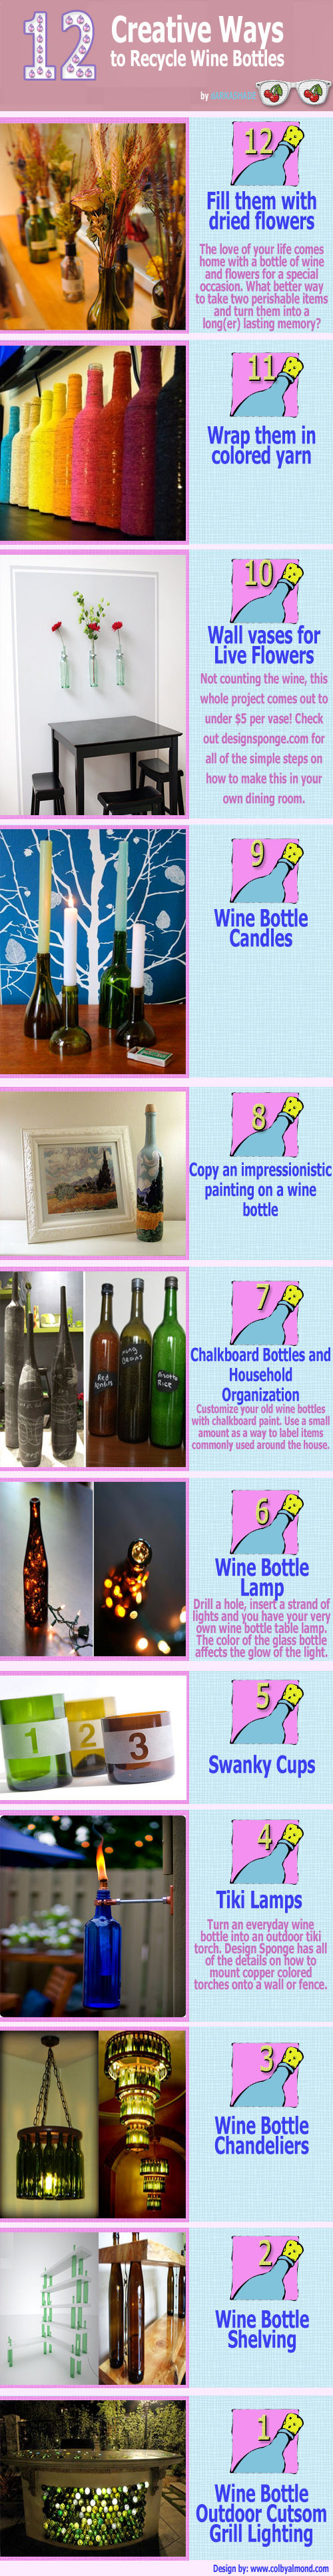 12 creative ways to recycle wine bottles diy pinterest for Recycling wine bottles creatively